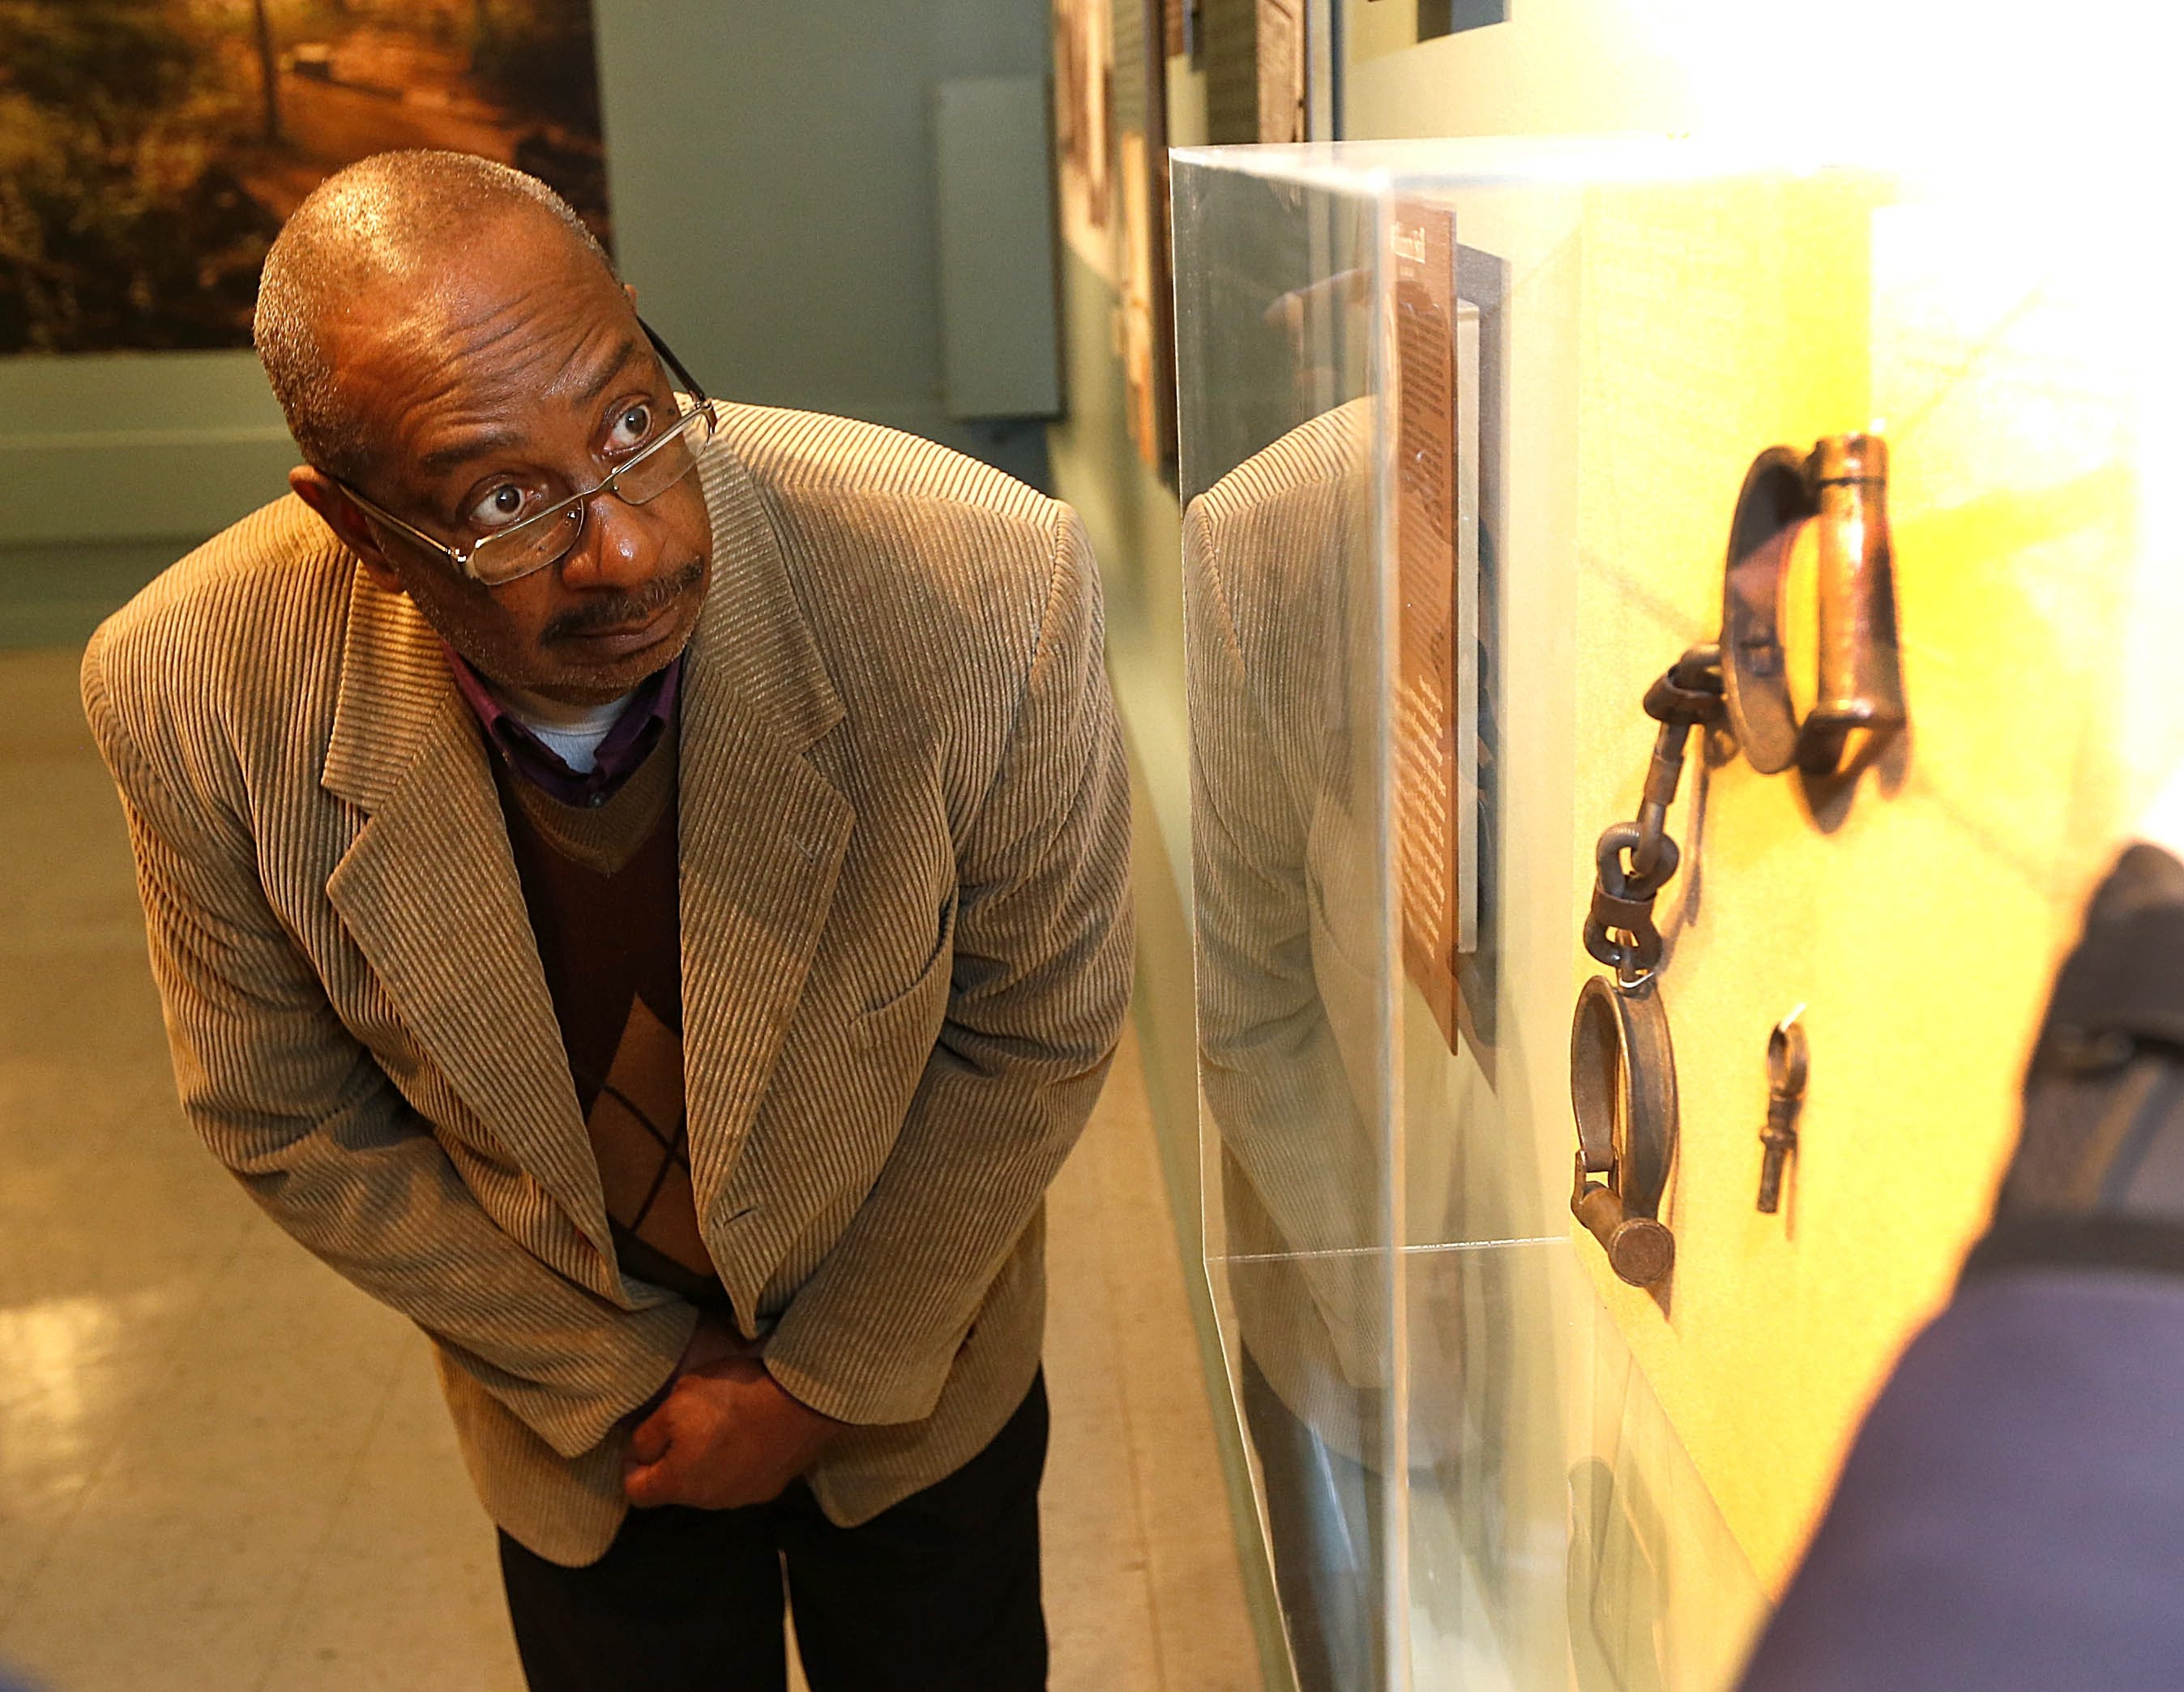 Hezekiah Watkins, 67, a former Freedom Rider who once shared a jail cell with the Rev. Martin Luther King Jr. in Jackson, Miss., looks at slave ankle cuffs at the Castellani Art Museum at Niagara University during his visit to the Underground Railroad exhibit.